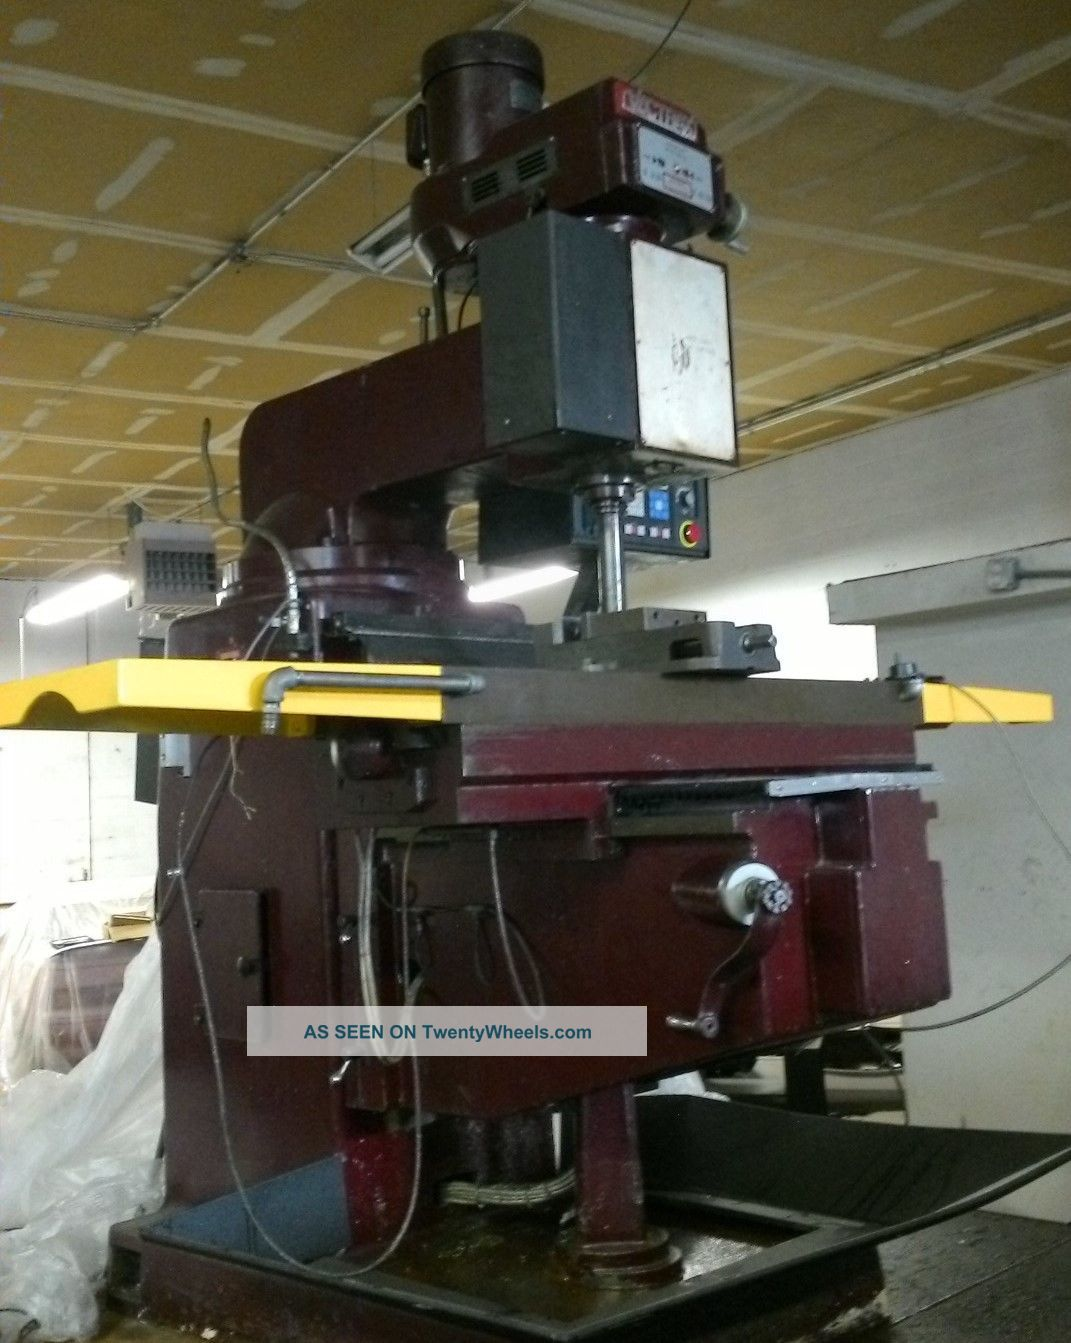 vectrax milling machine